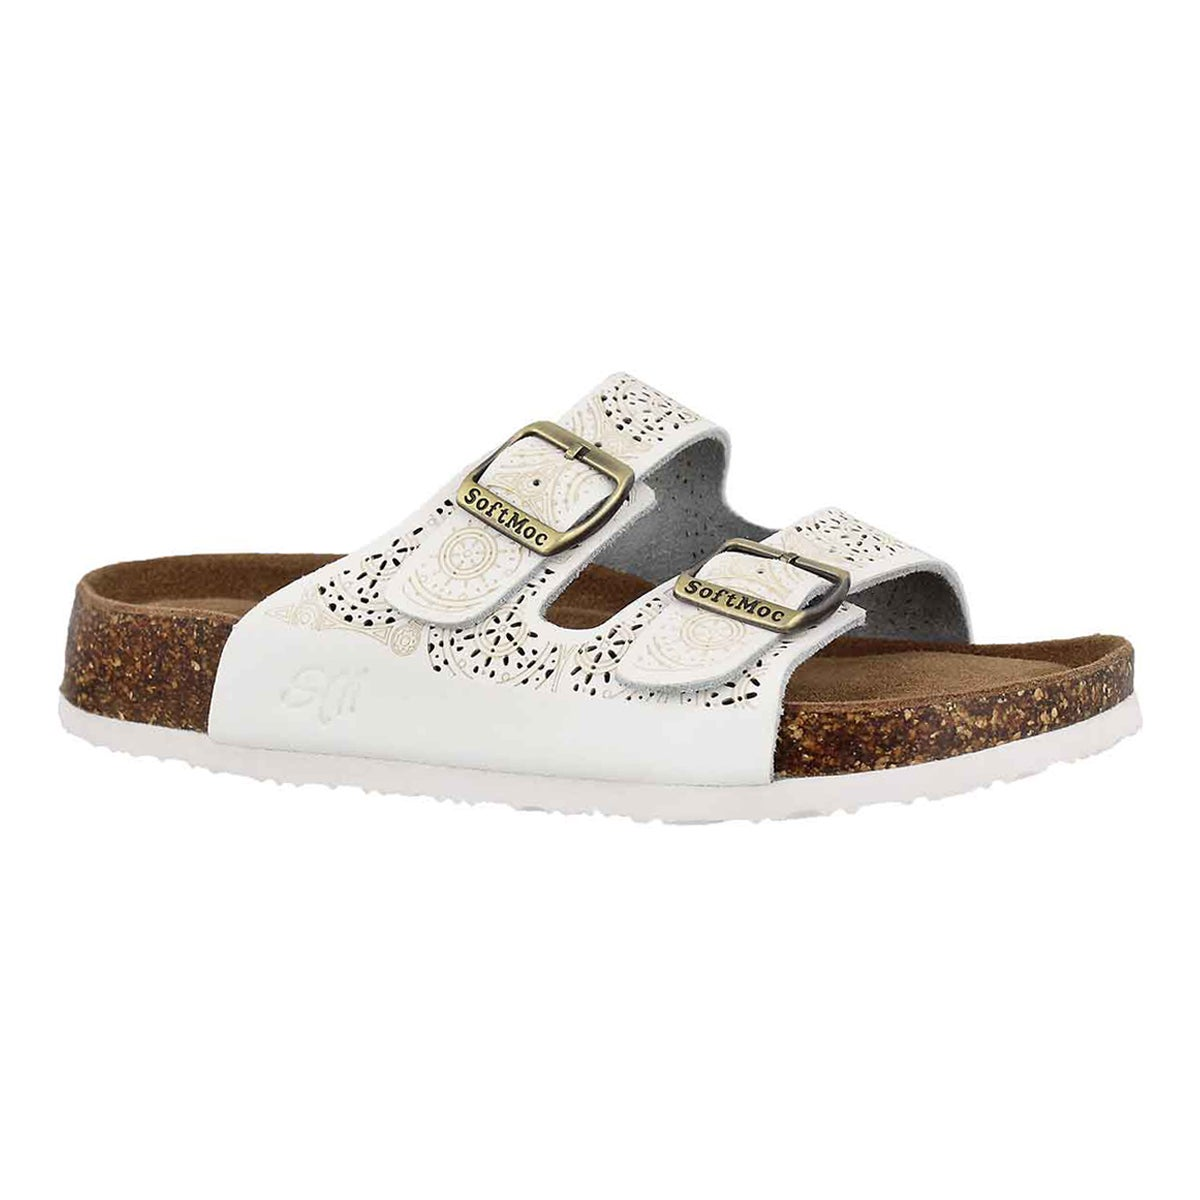 Women's ANNA 5 white perforated slide sandals